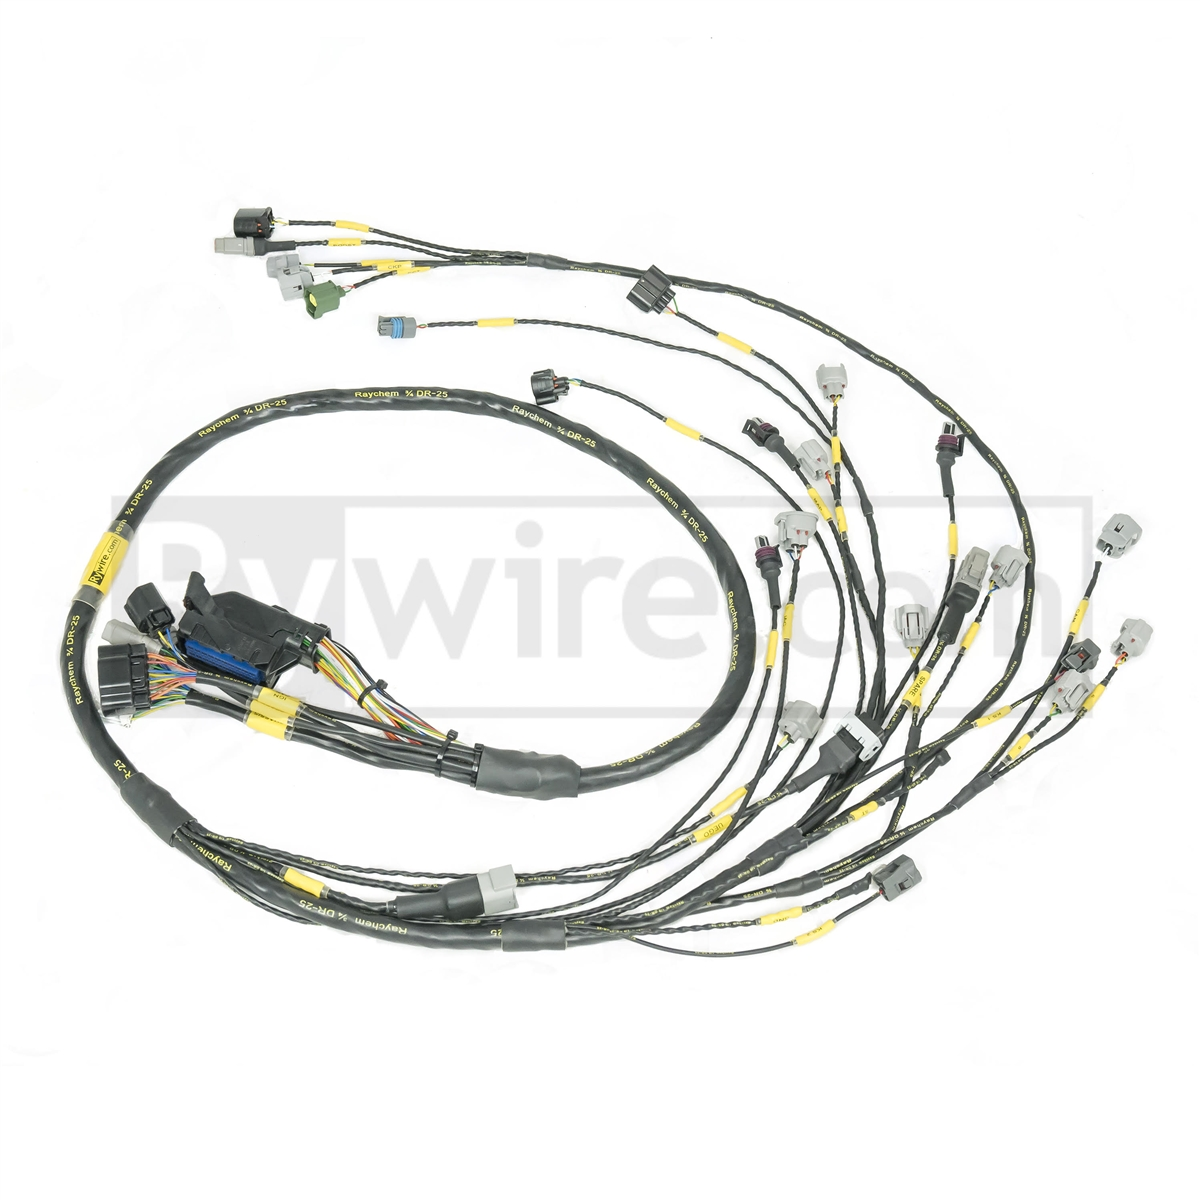 medium resolution of toyota 2jz infinity 506 mil spec engine harness ford engine wiring harness toyota engine harness